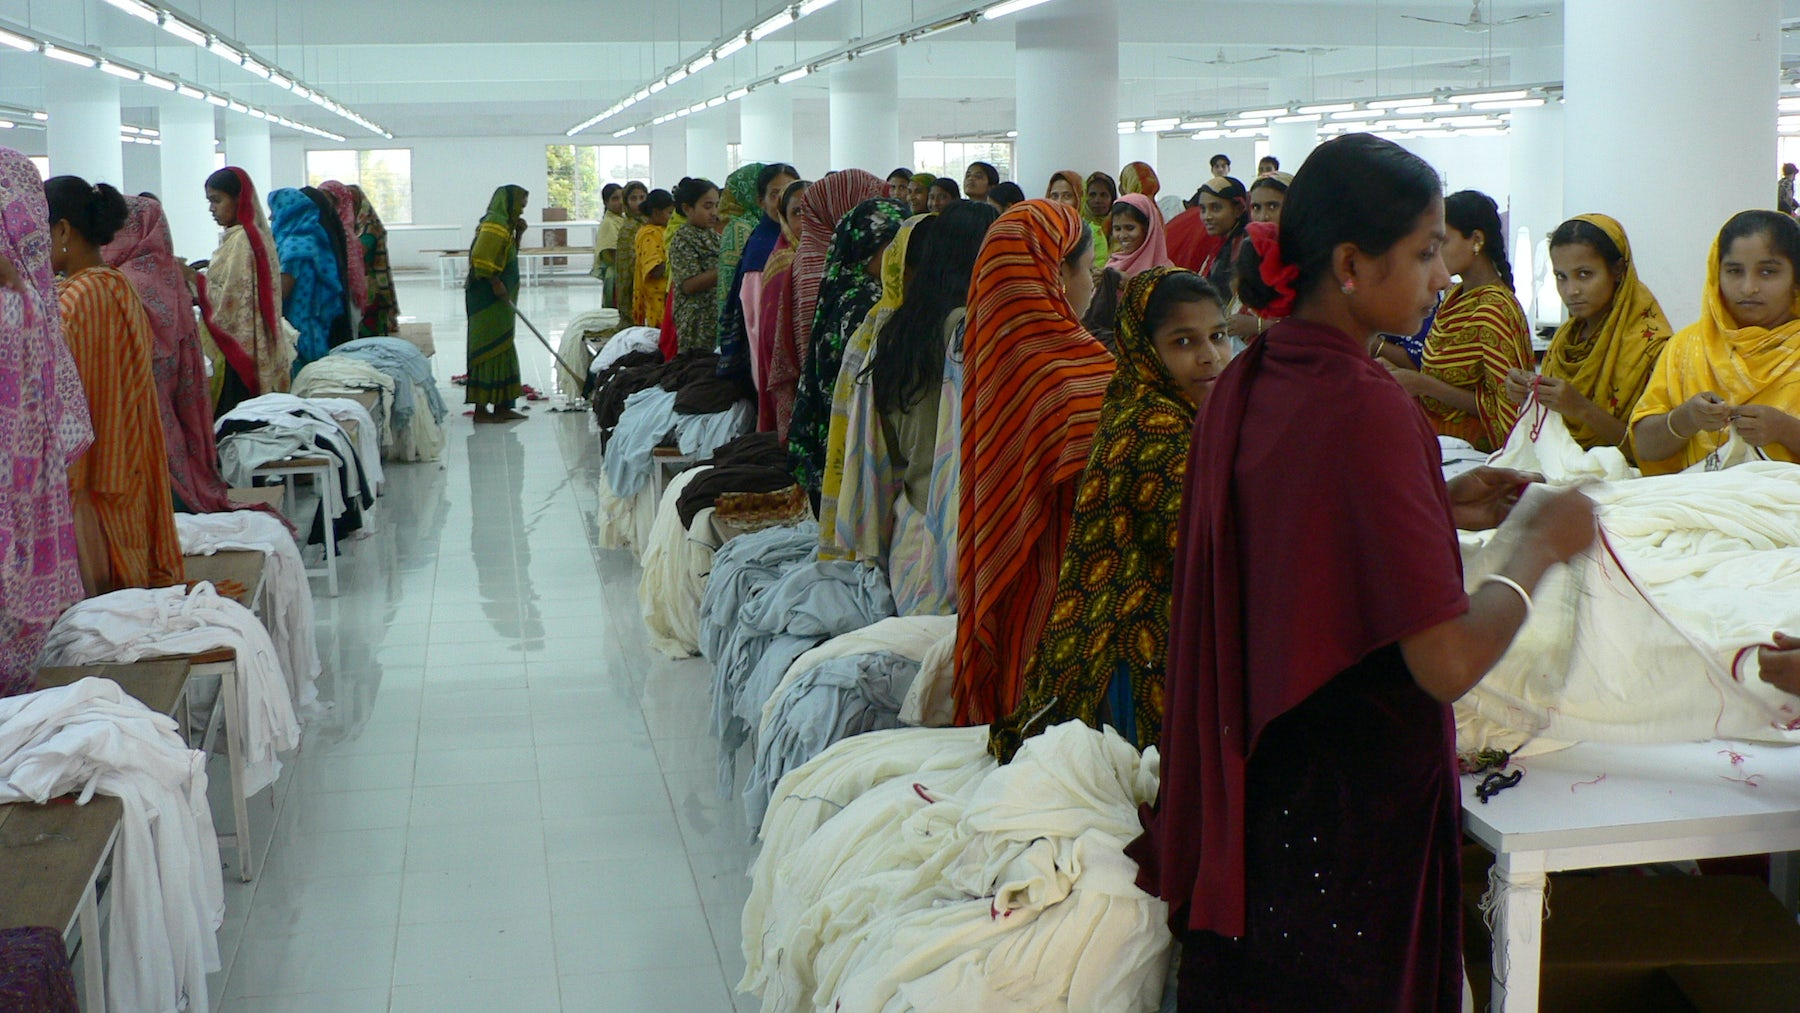 Textile Factory Workers in Dhaka   Source: Shutterstock